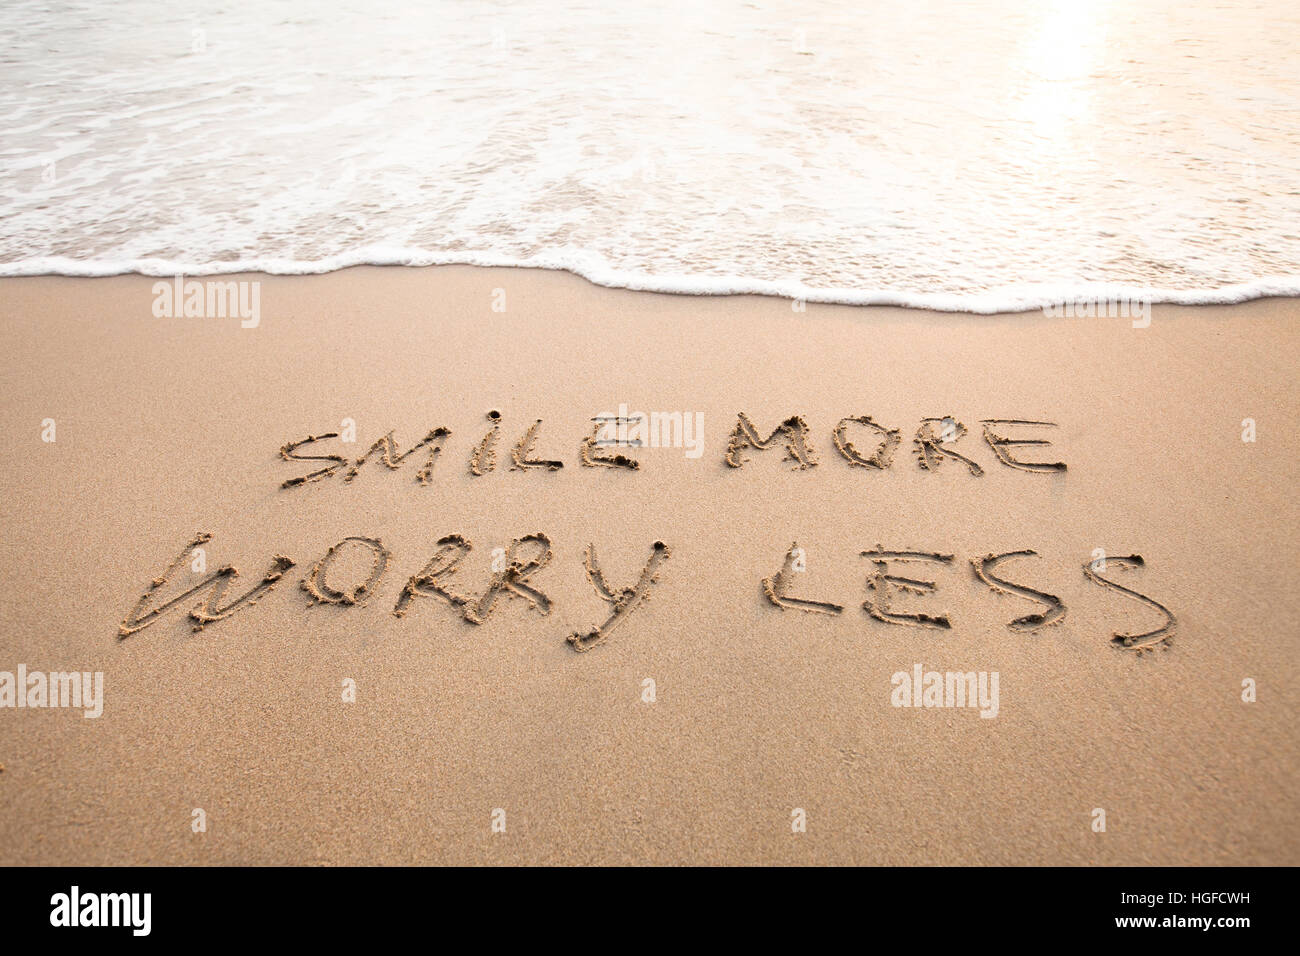 smile more worry less - positive thinking concept, optimism - Stock Image